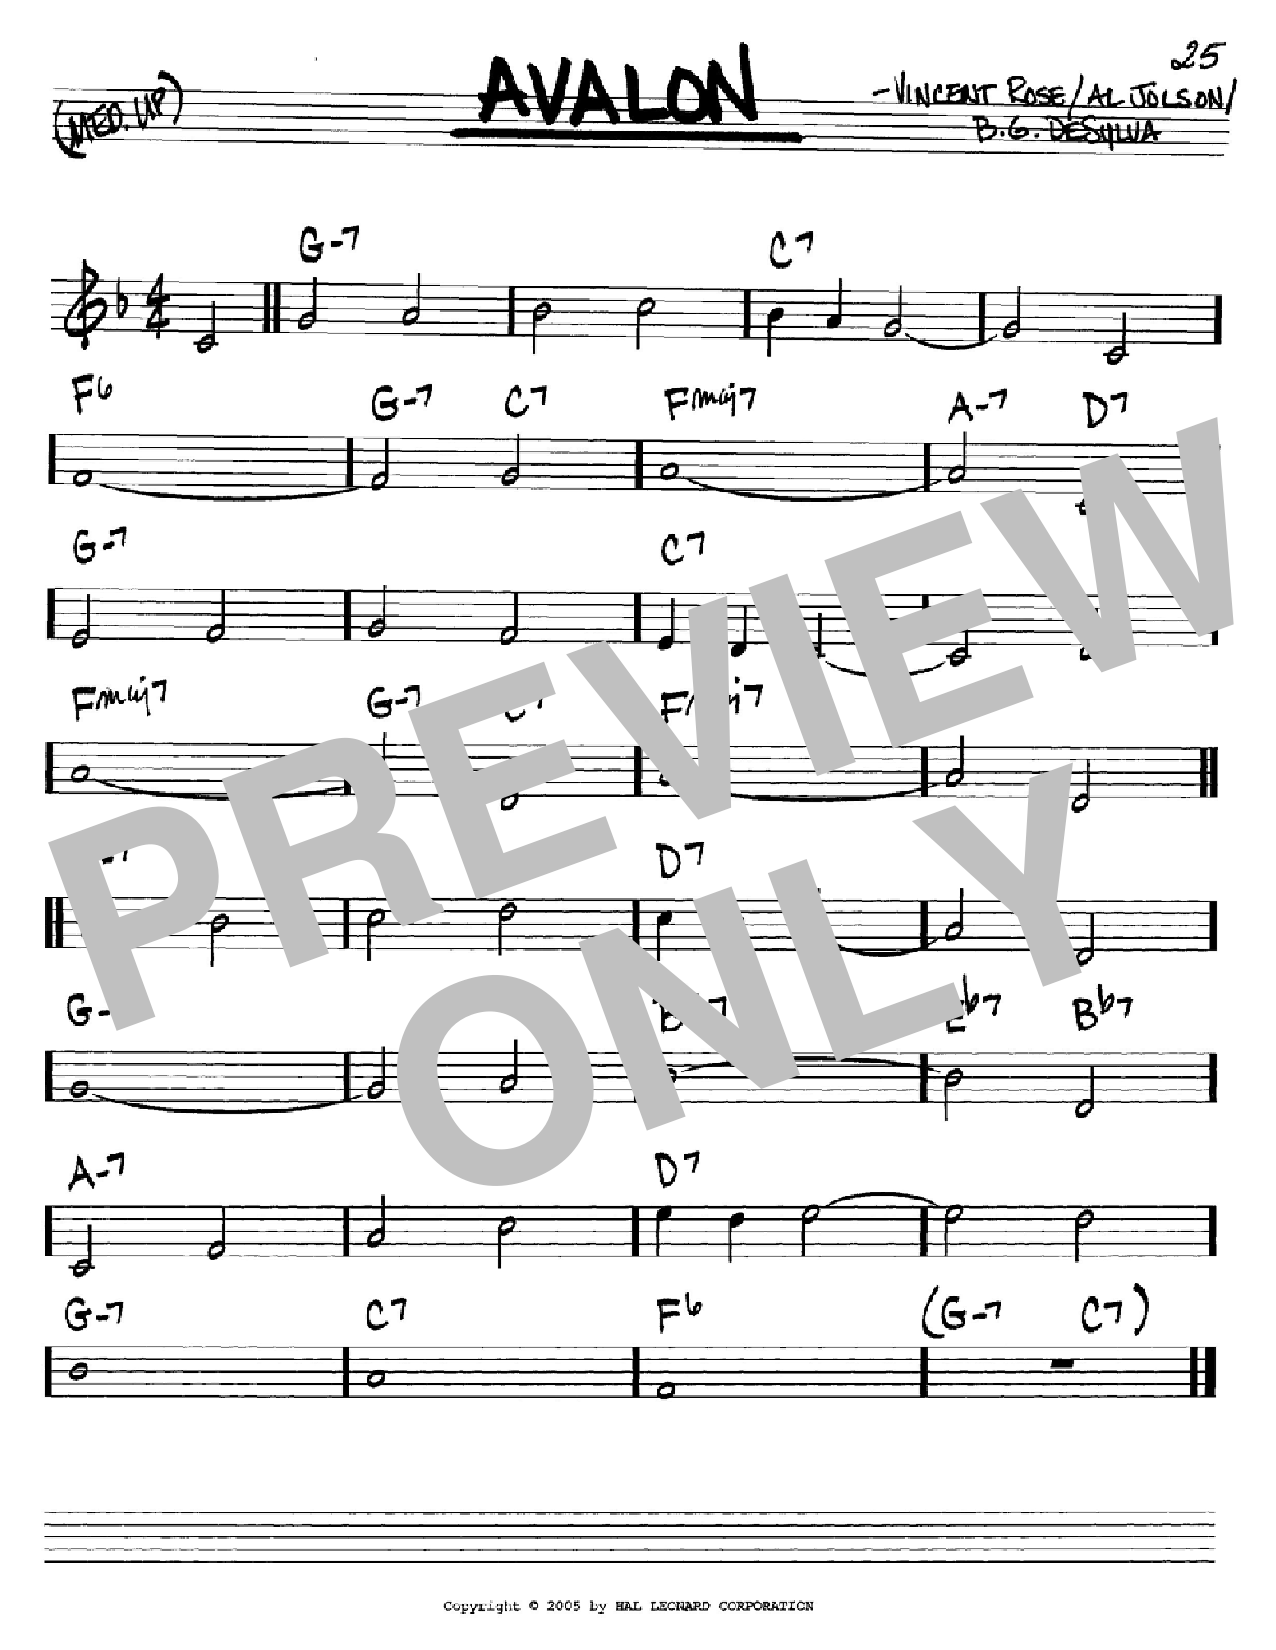 Avalon Sheet Music